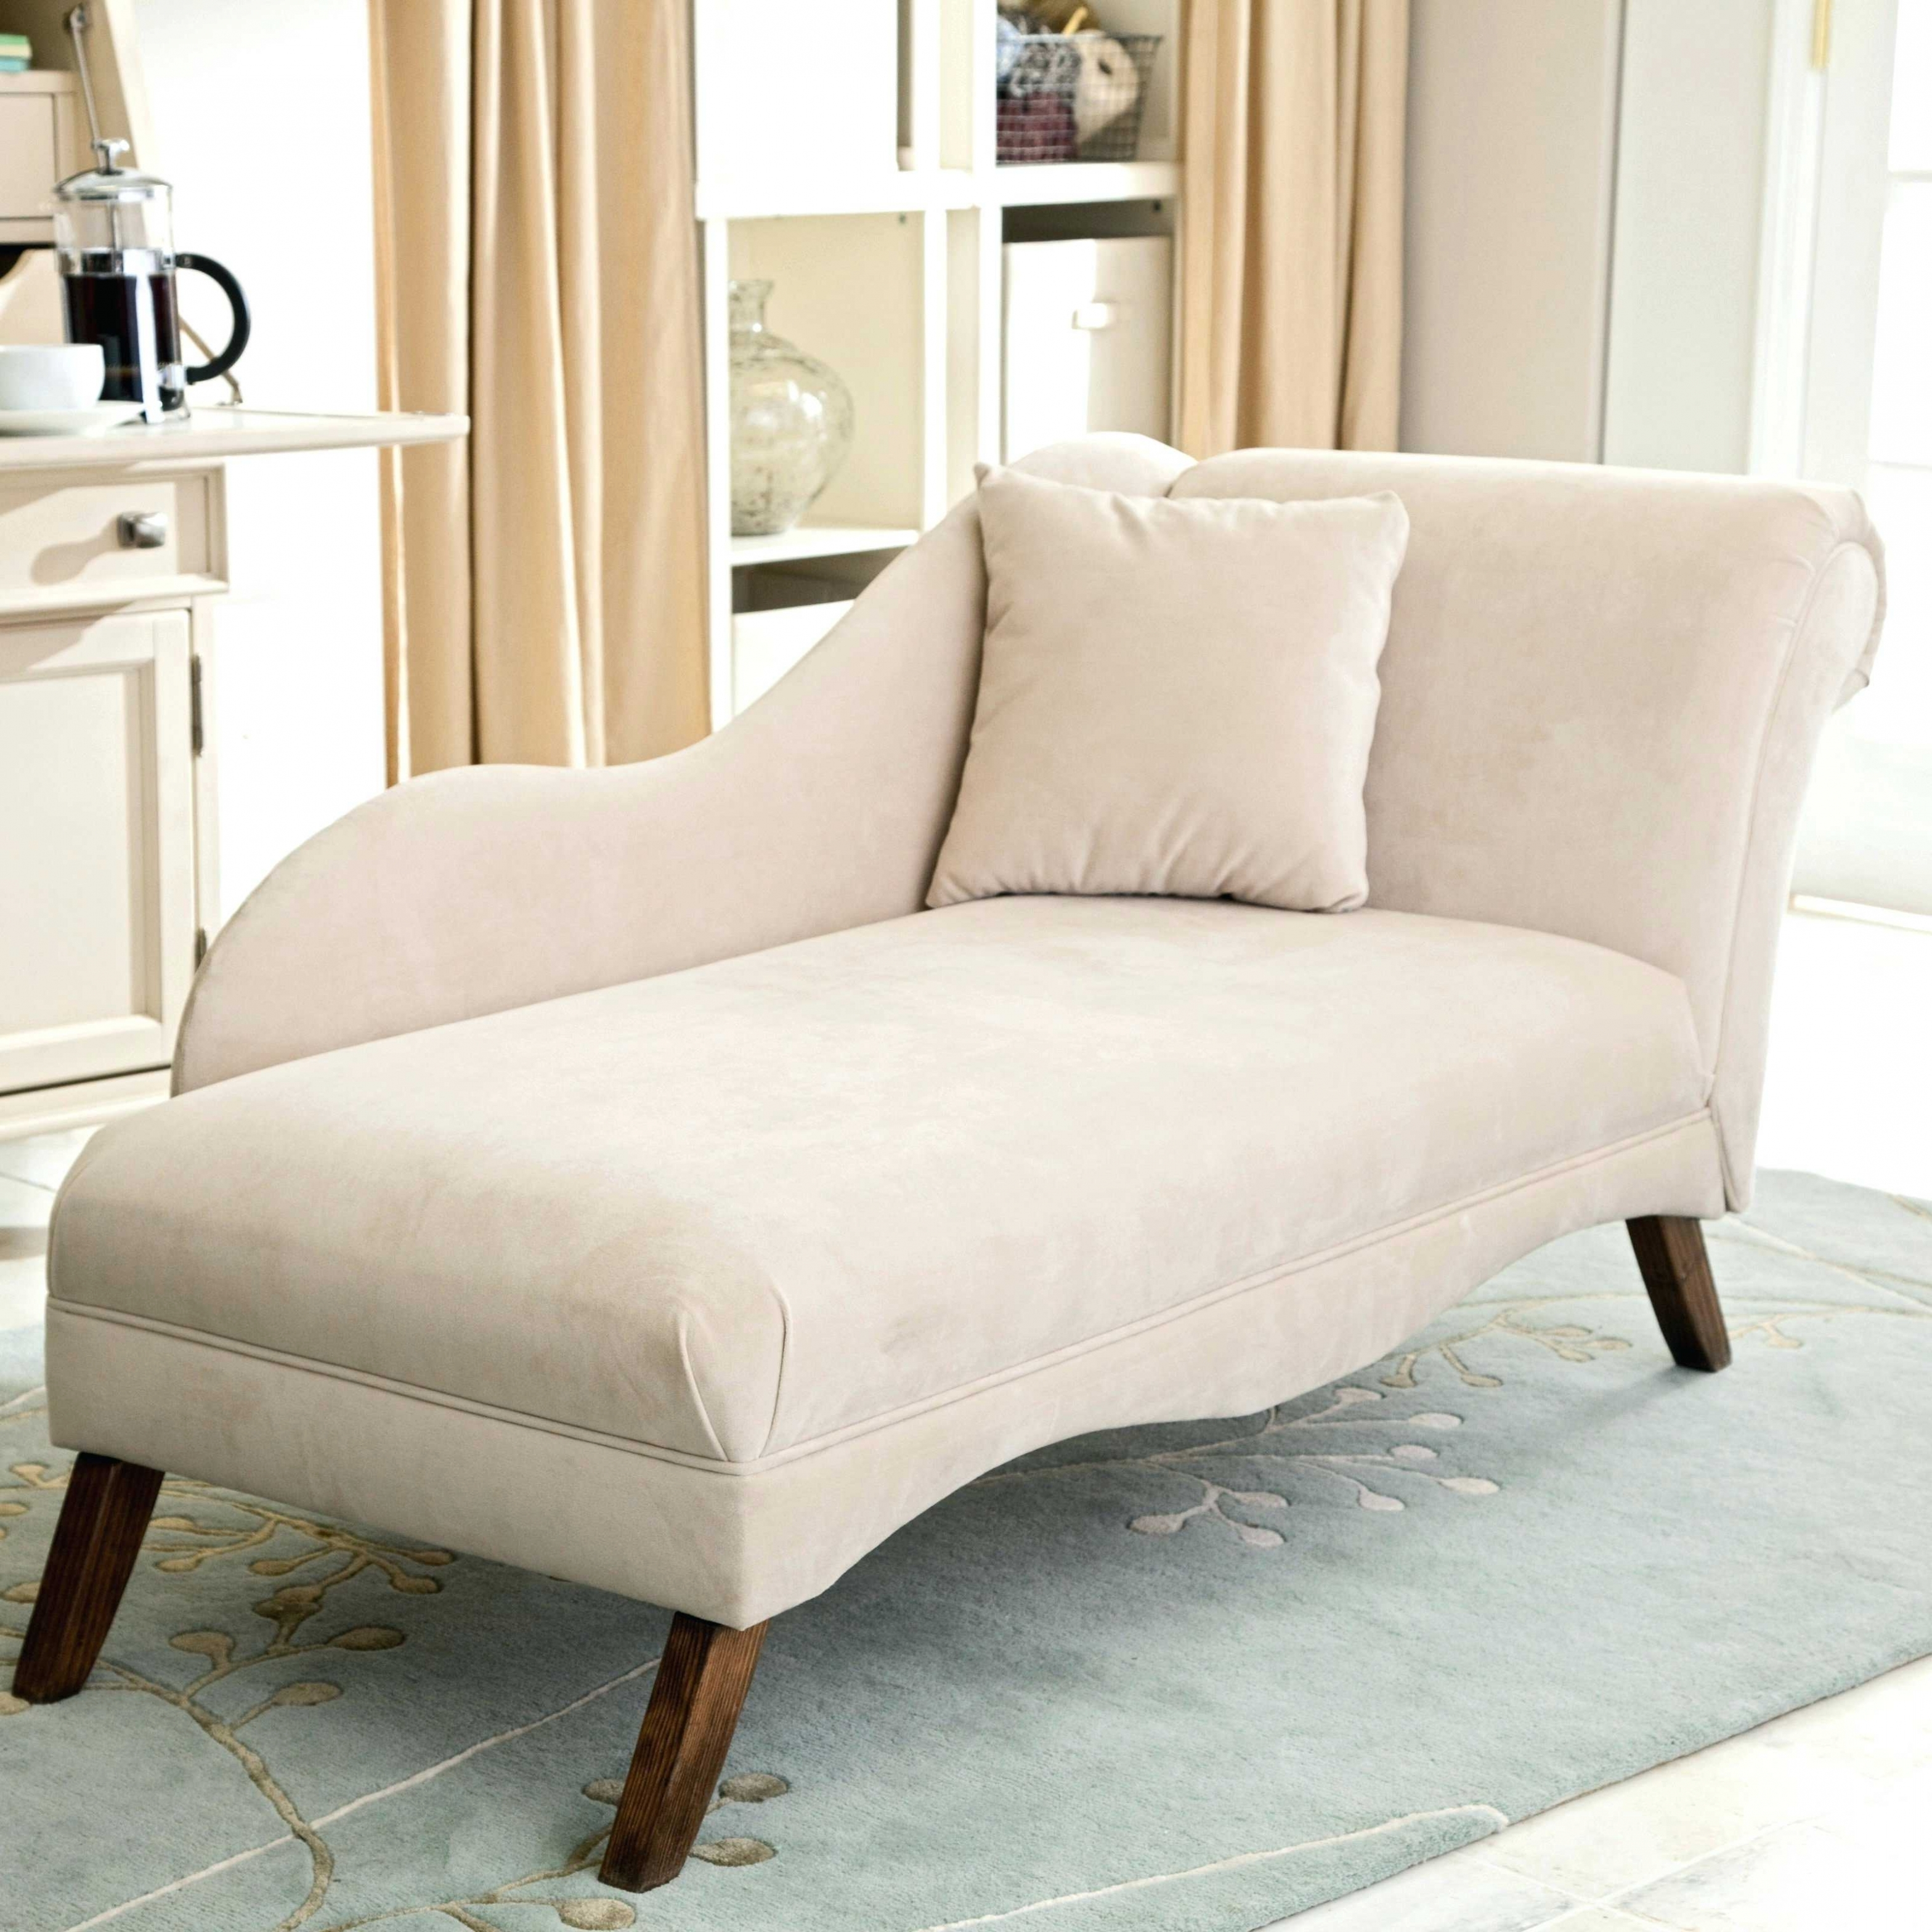 Home Decor: Small Chaise Lounge Chairs For Bedroom French Style Regarding Latest Narrow Chaise Lounge Chairs (View 3 of 15)